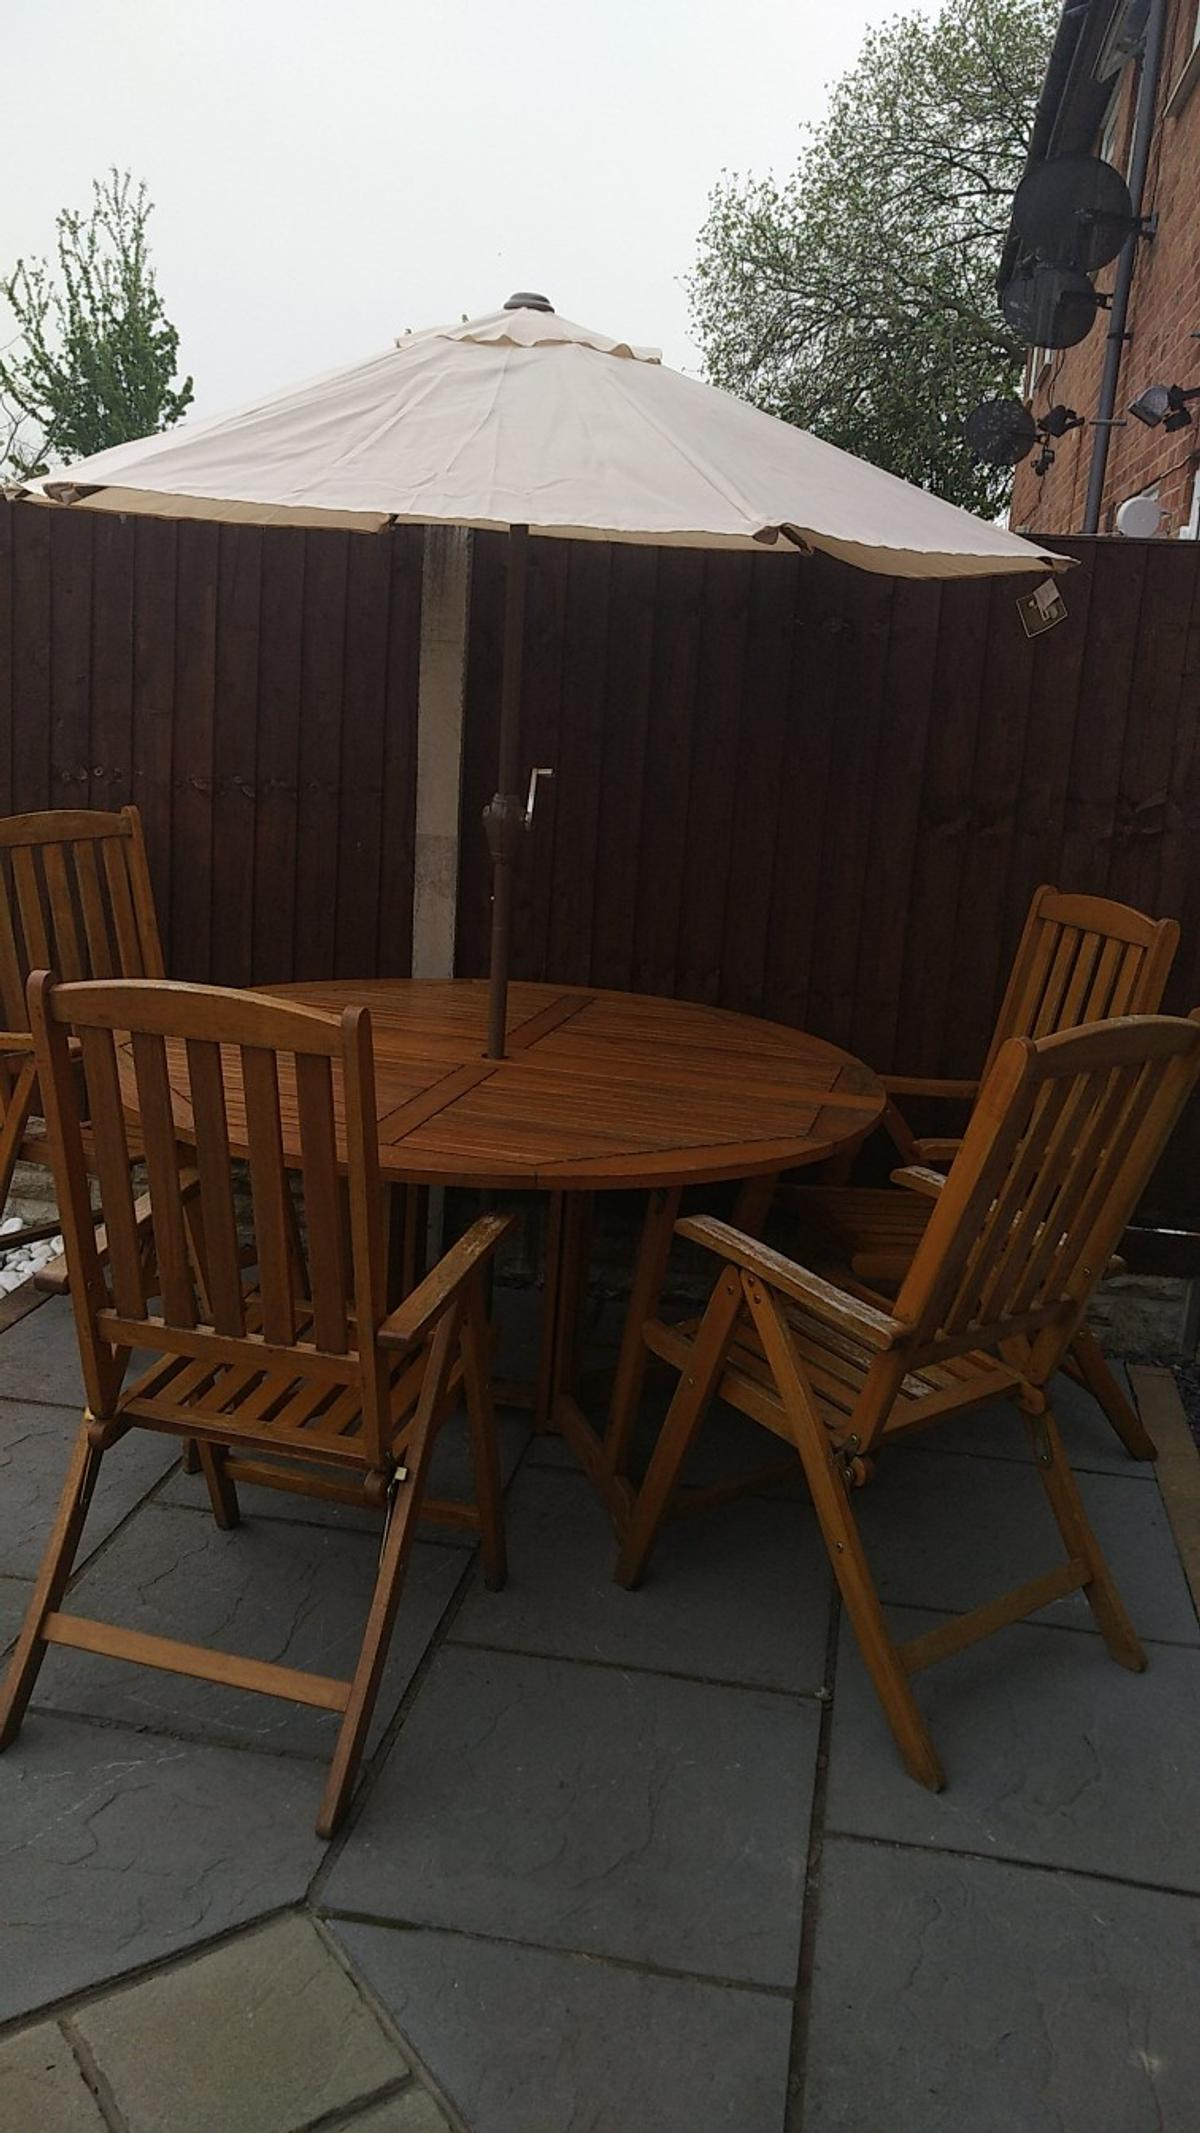 Royal Craft Patio Table Chairs Parasol